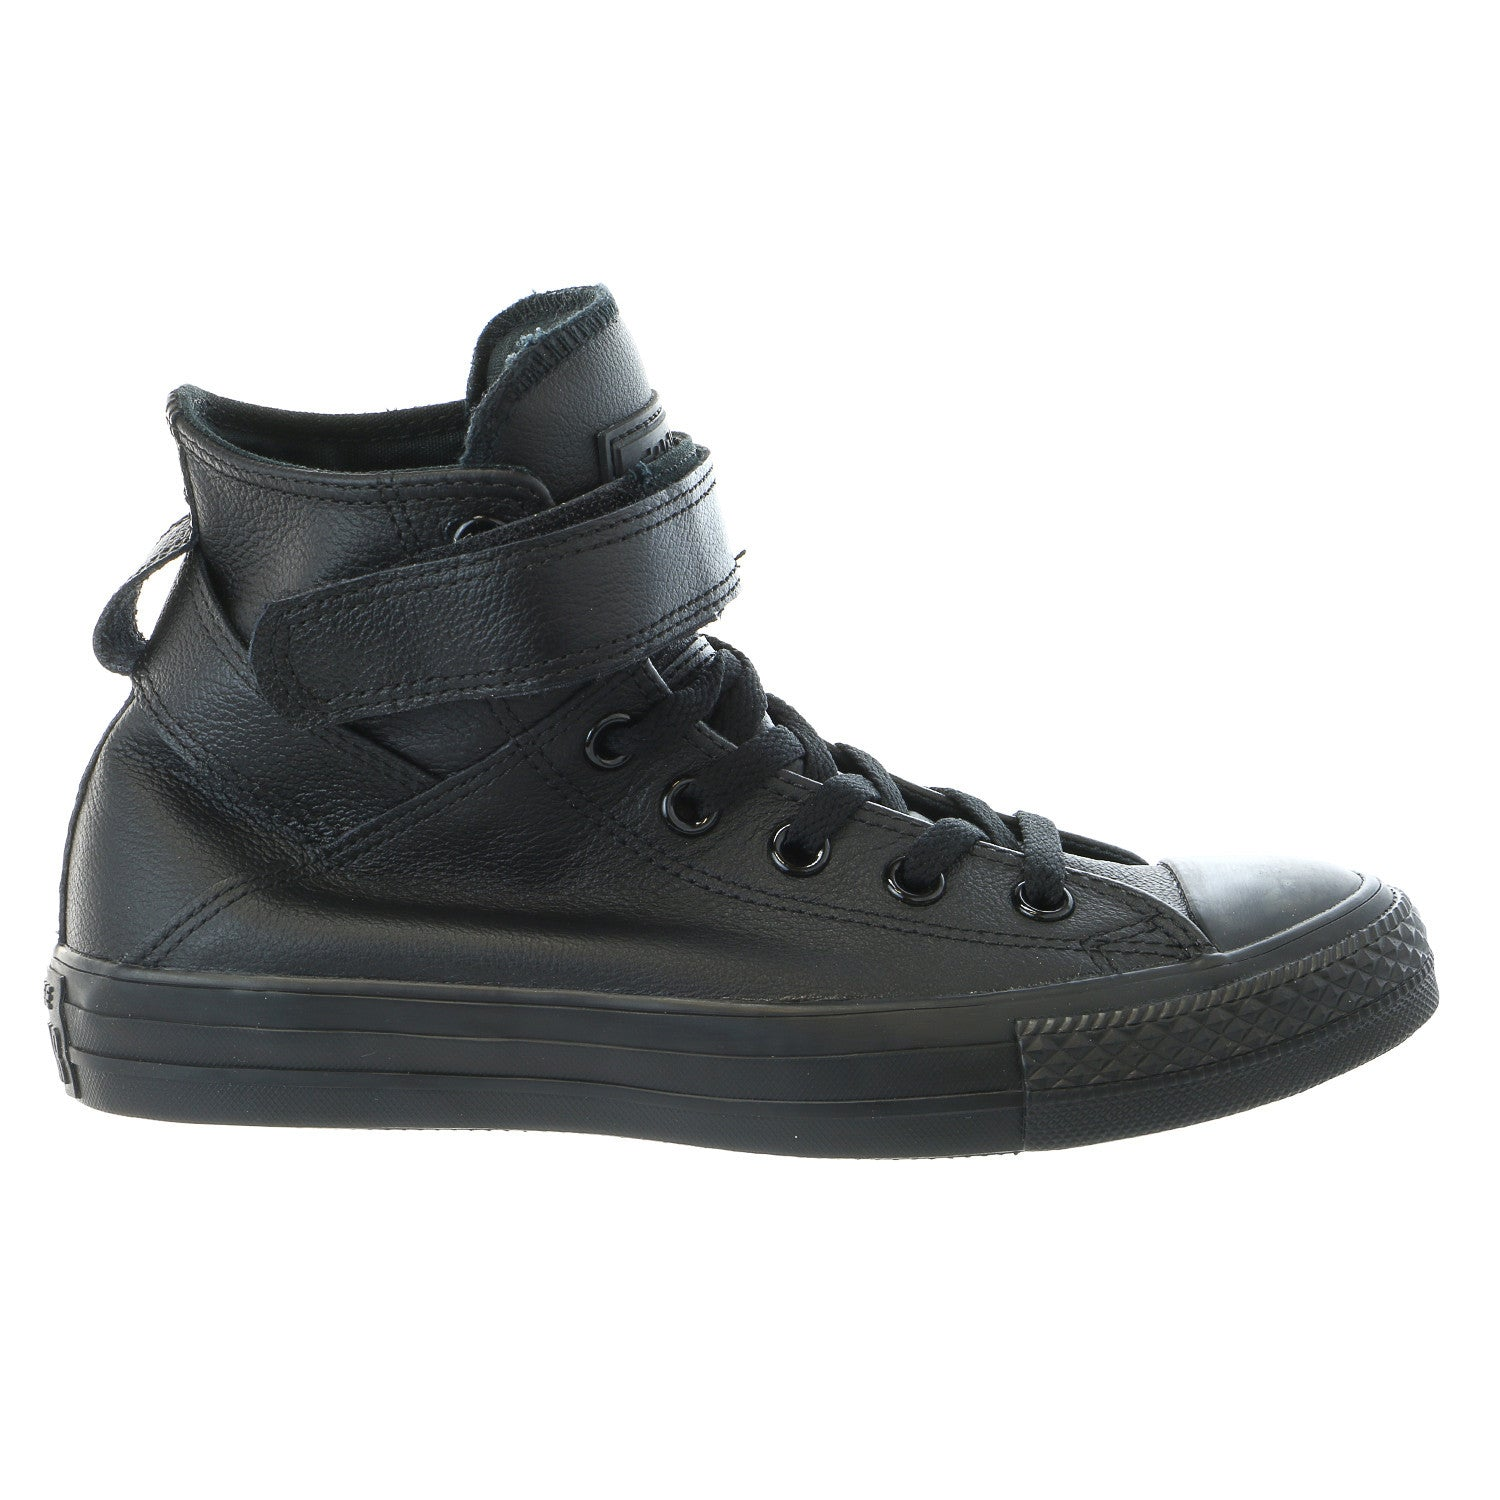 converse chuck taylor all star brea